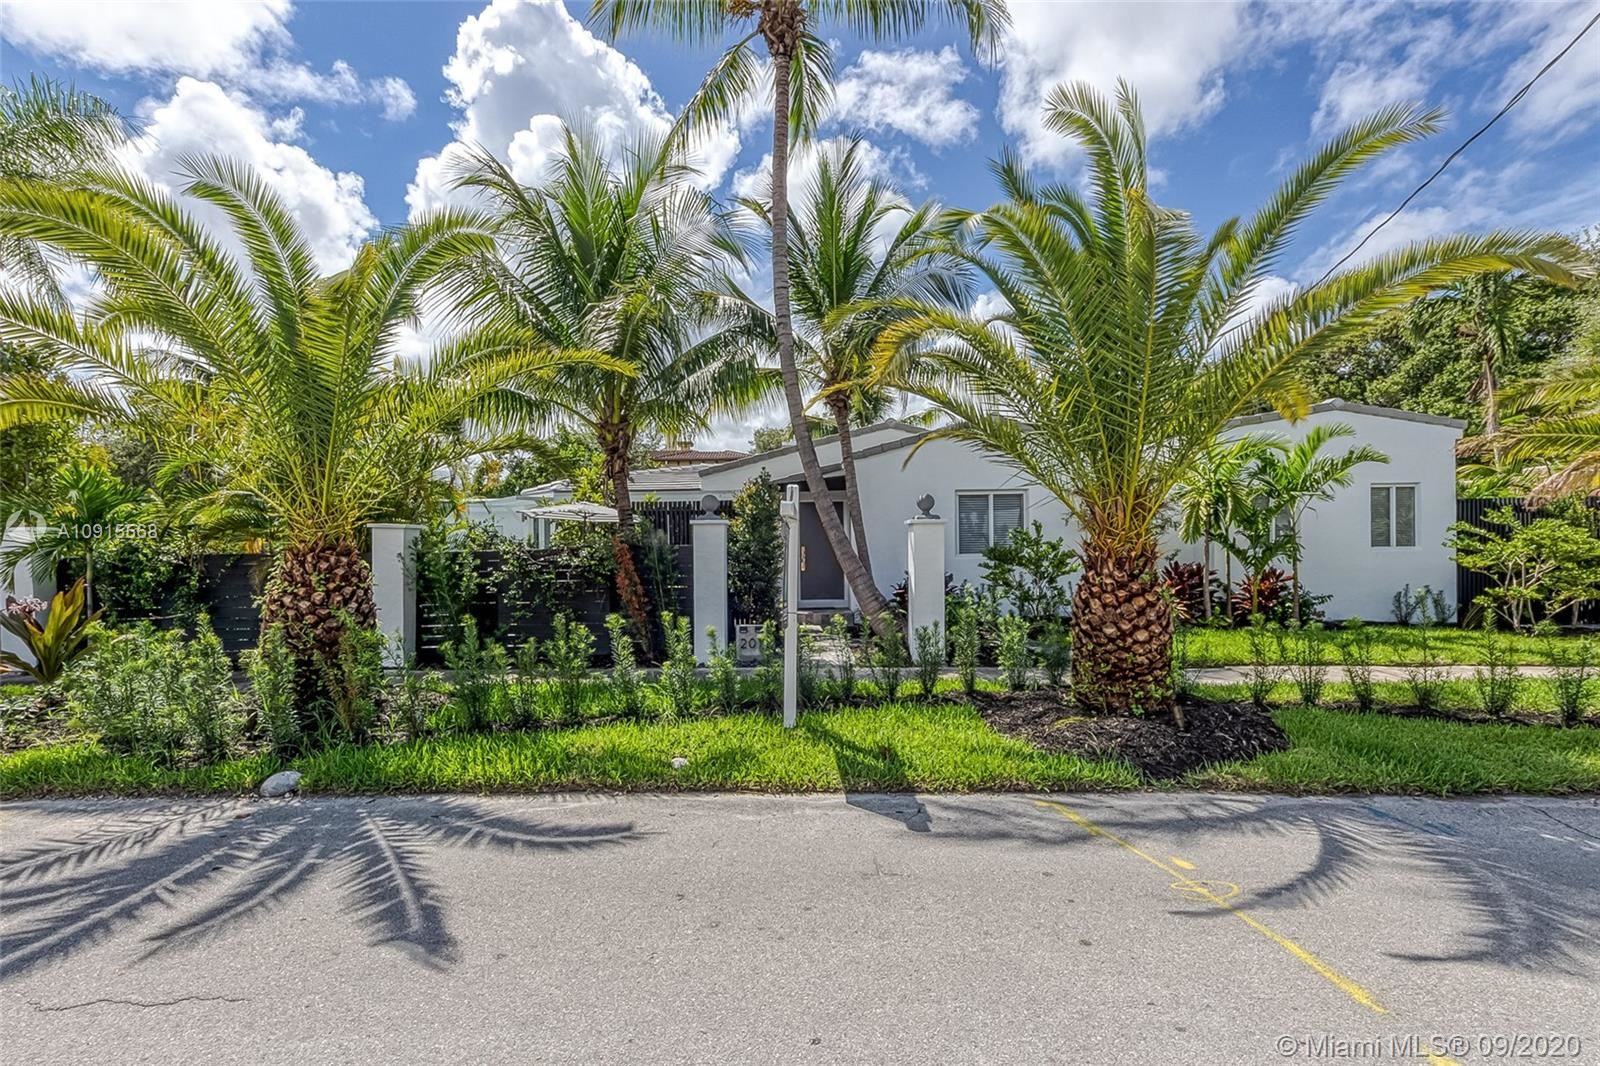 Photo of 201 NE 16th Ave, Fort Lauderdale, FL 33301 (MLS # A10915568)